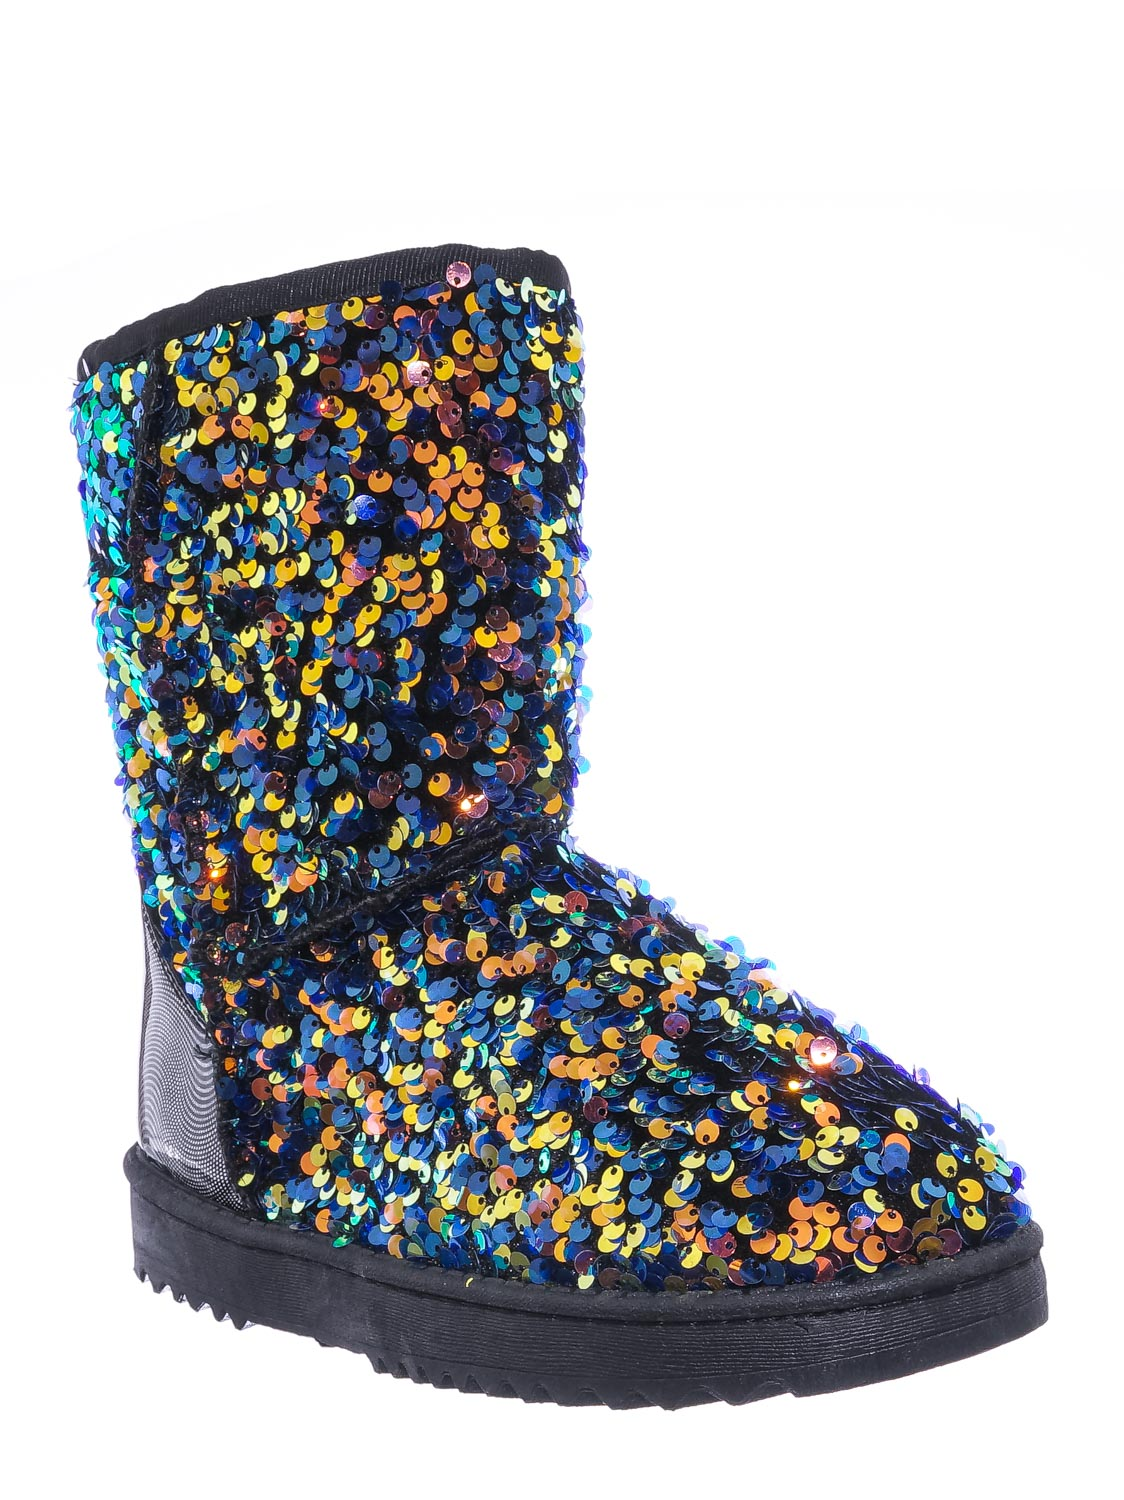 Girls Mid Calf Winter Shoes Annie42K Children/'s Sequins Faux-Fur Lined Boots